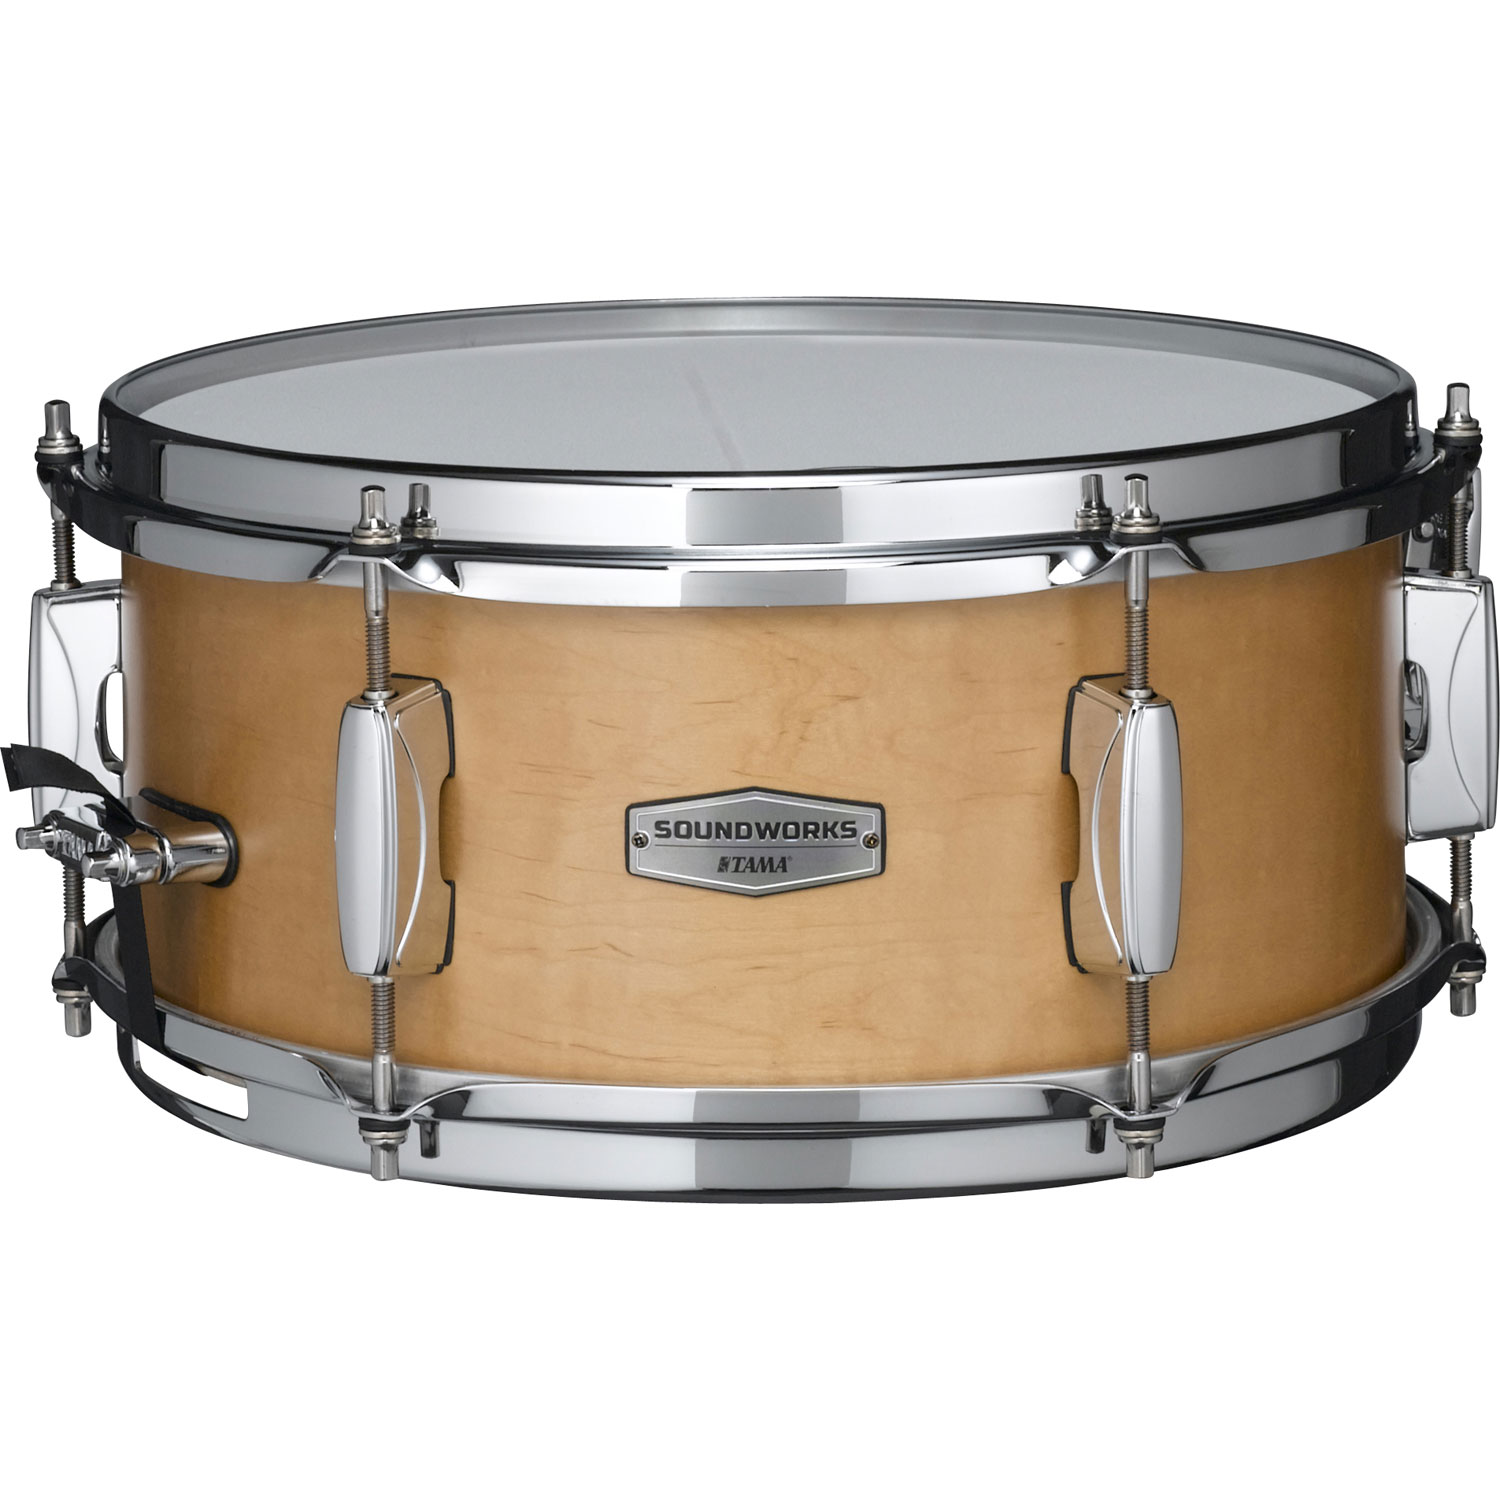 "Tama 6.5"" x 14"" Soundworks Maple Snare Drum"